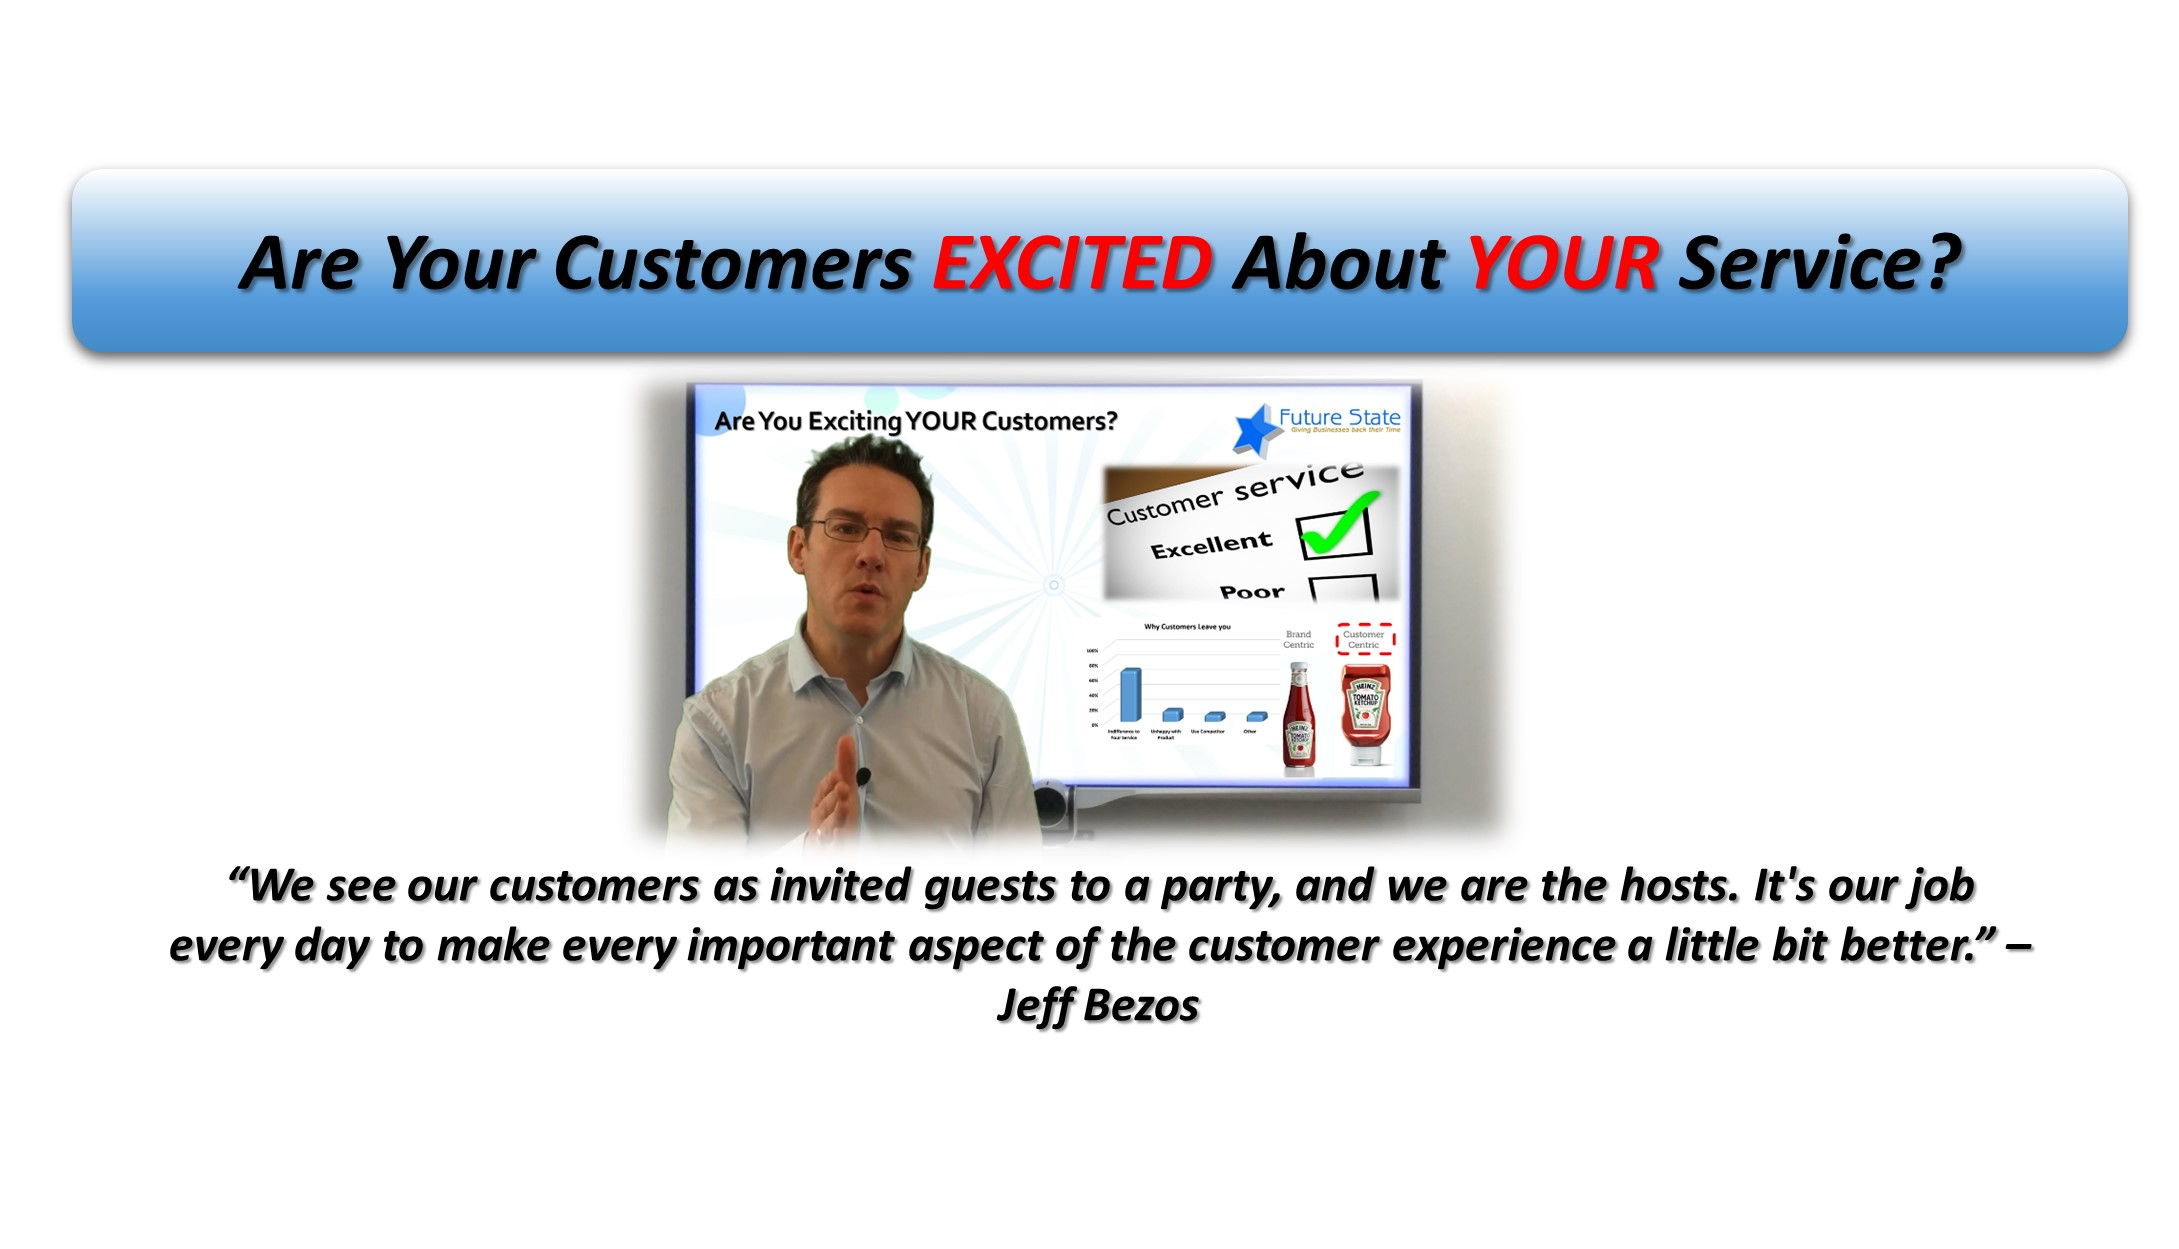 Do Your Customers Get Excited About YOUR Service?